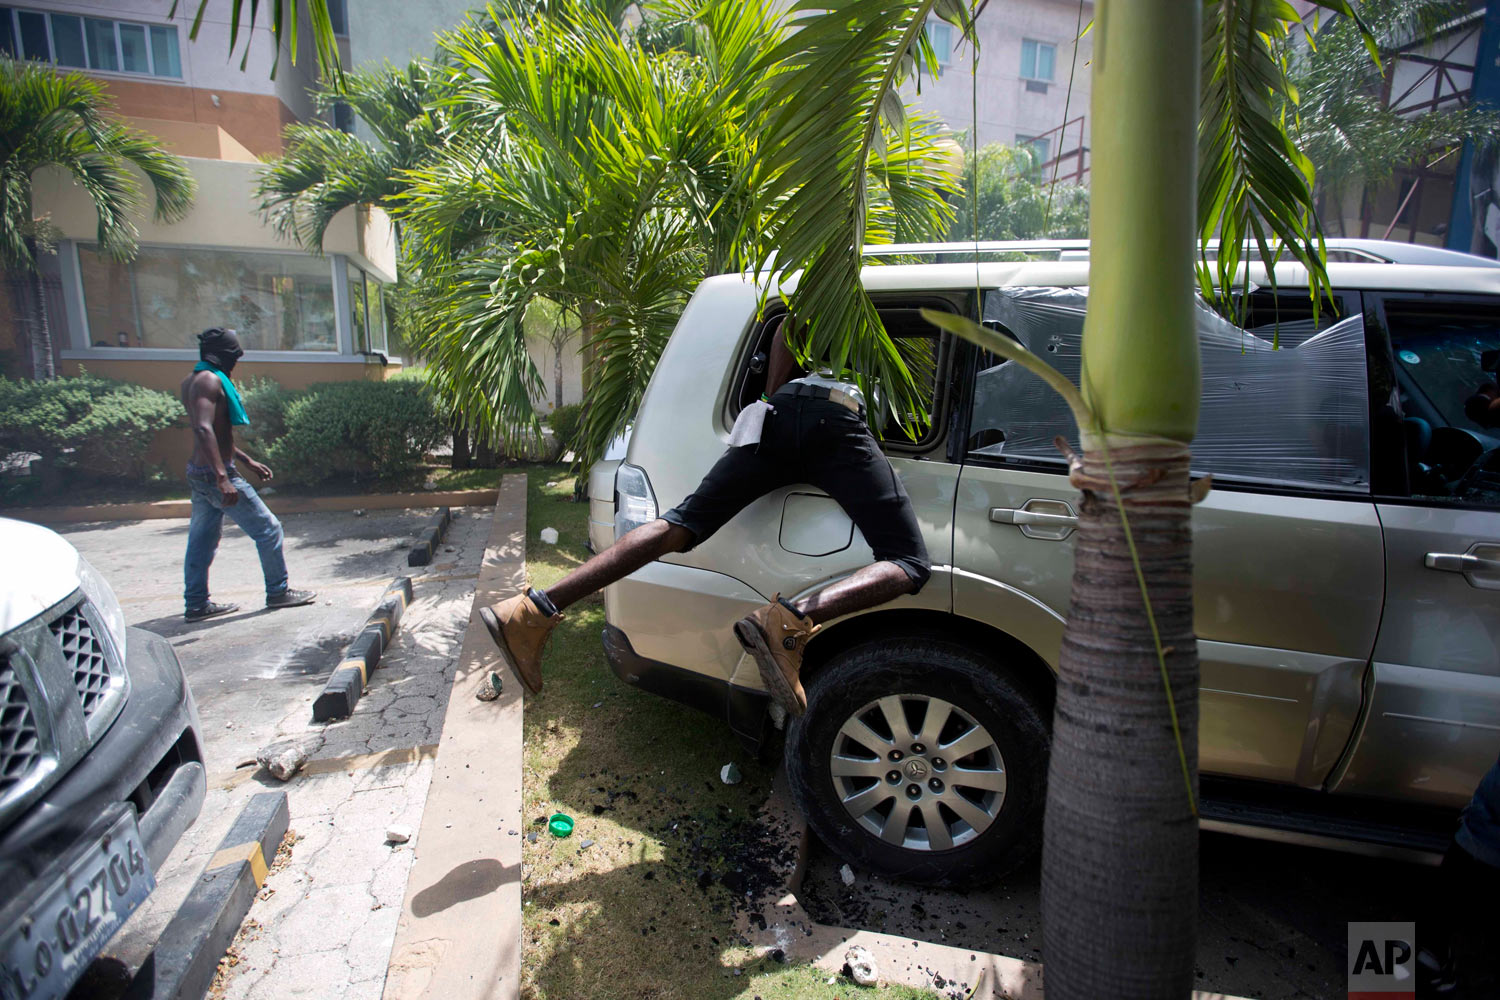 In this July 7, 2018 photo, a man looks inside a car before setting it on fire at the Royal Oasis hotel during protests over a fuel price increase in Port-au-Prince, Haiti. The government announced an increase in prices for gasoline, diesel and kerosene, part of a plan endorsed by the IMF to modernize the economy, but then cancelled the hike after violent protests broke out. (AP Photo/Dieu Nalio Chery)